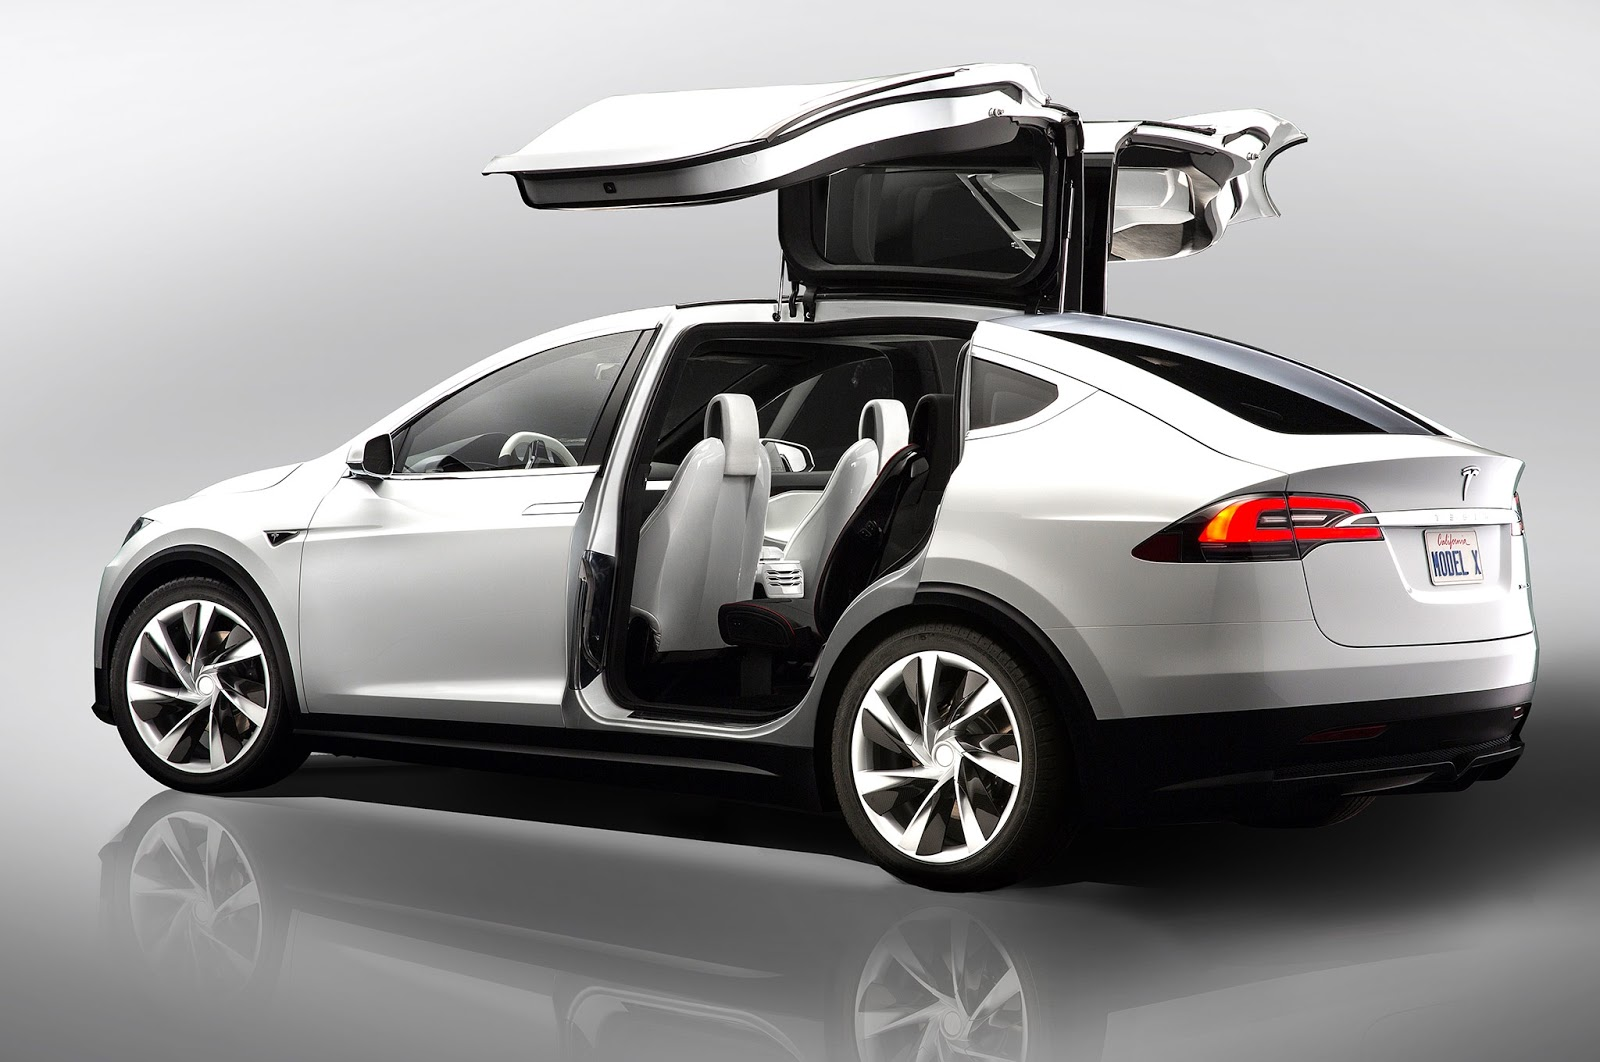 I Read An Article The Other Day By Financial Yst James Sanford That Claimed Falcon Wing Doors On Model X Those Open Upwards Instead